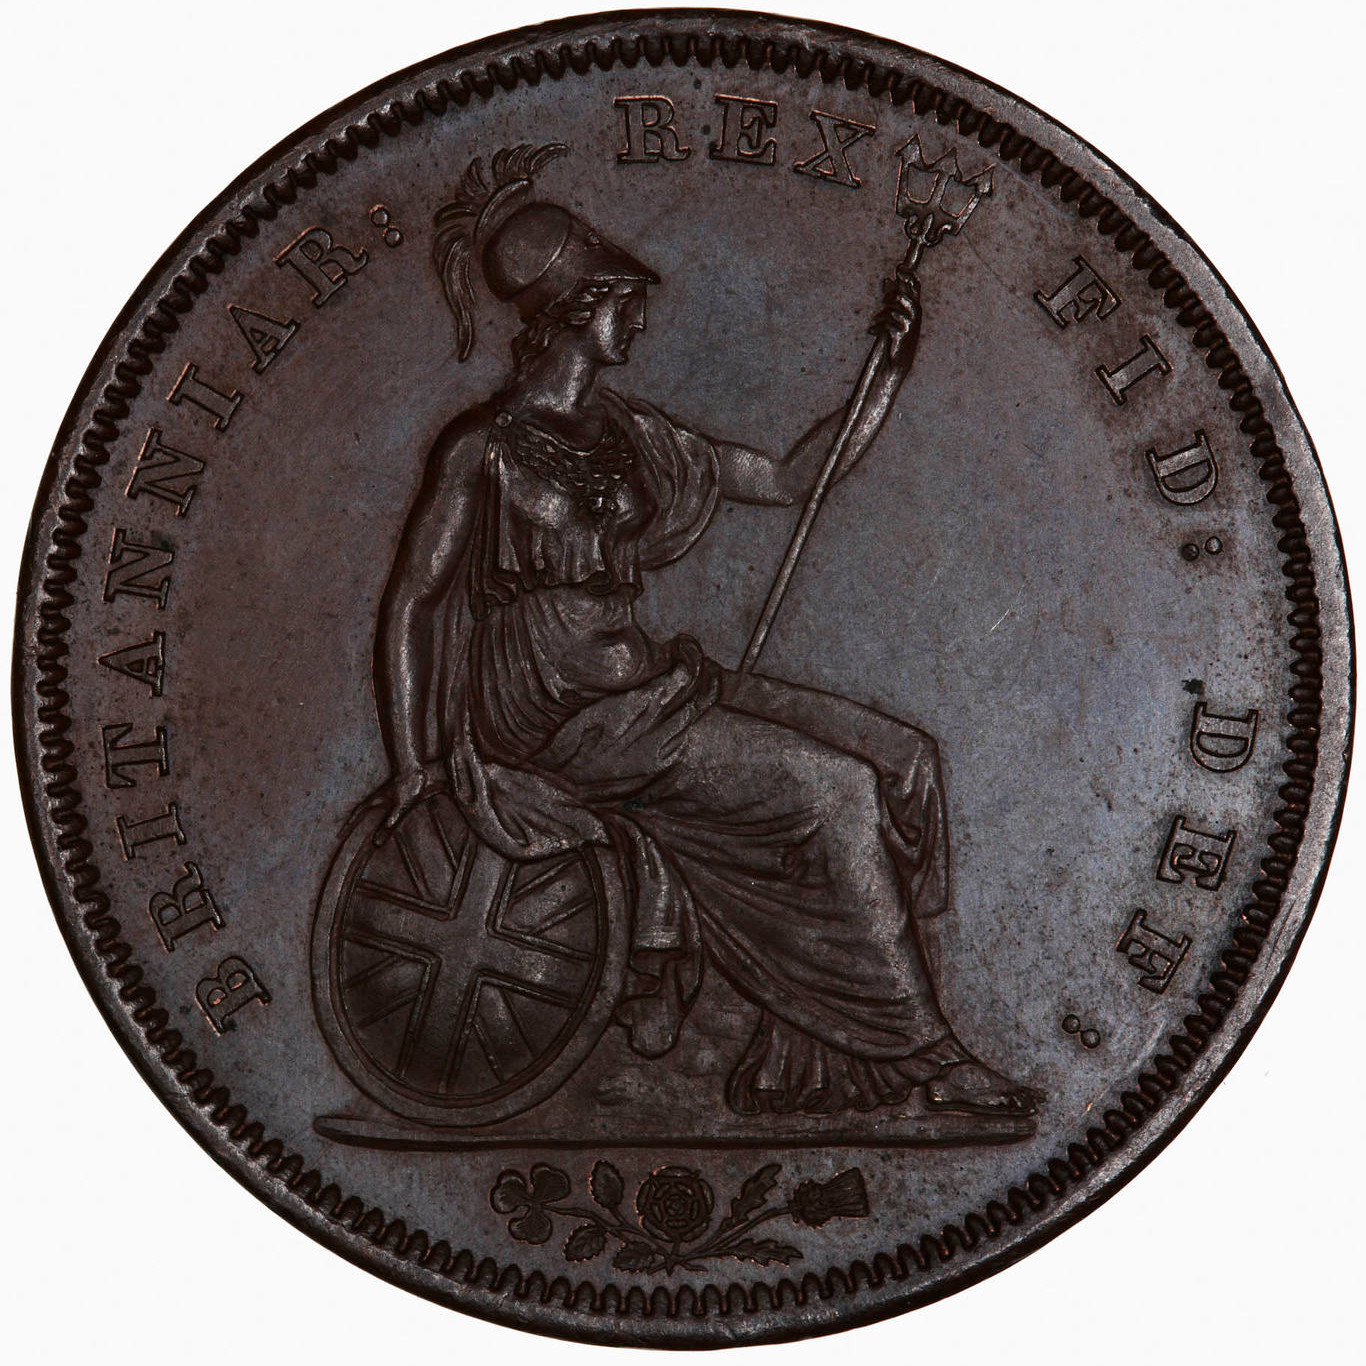 Penny (Britannia, second design): Photo Proof Coin - Penny, George IV, Great Britain, 1826